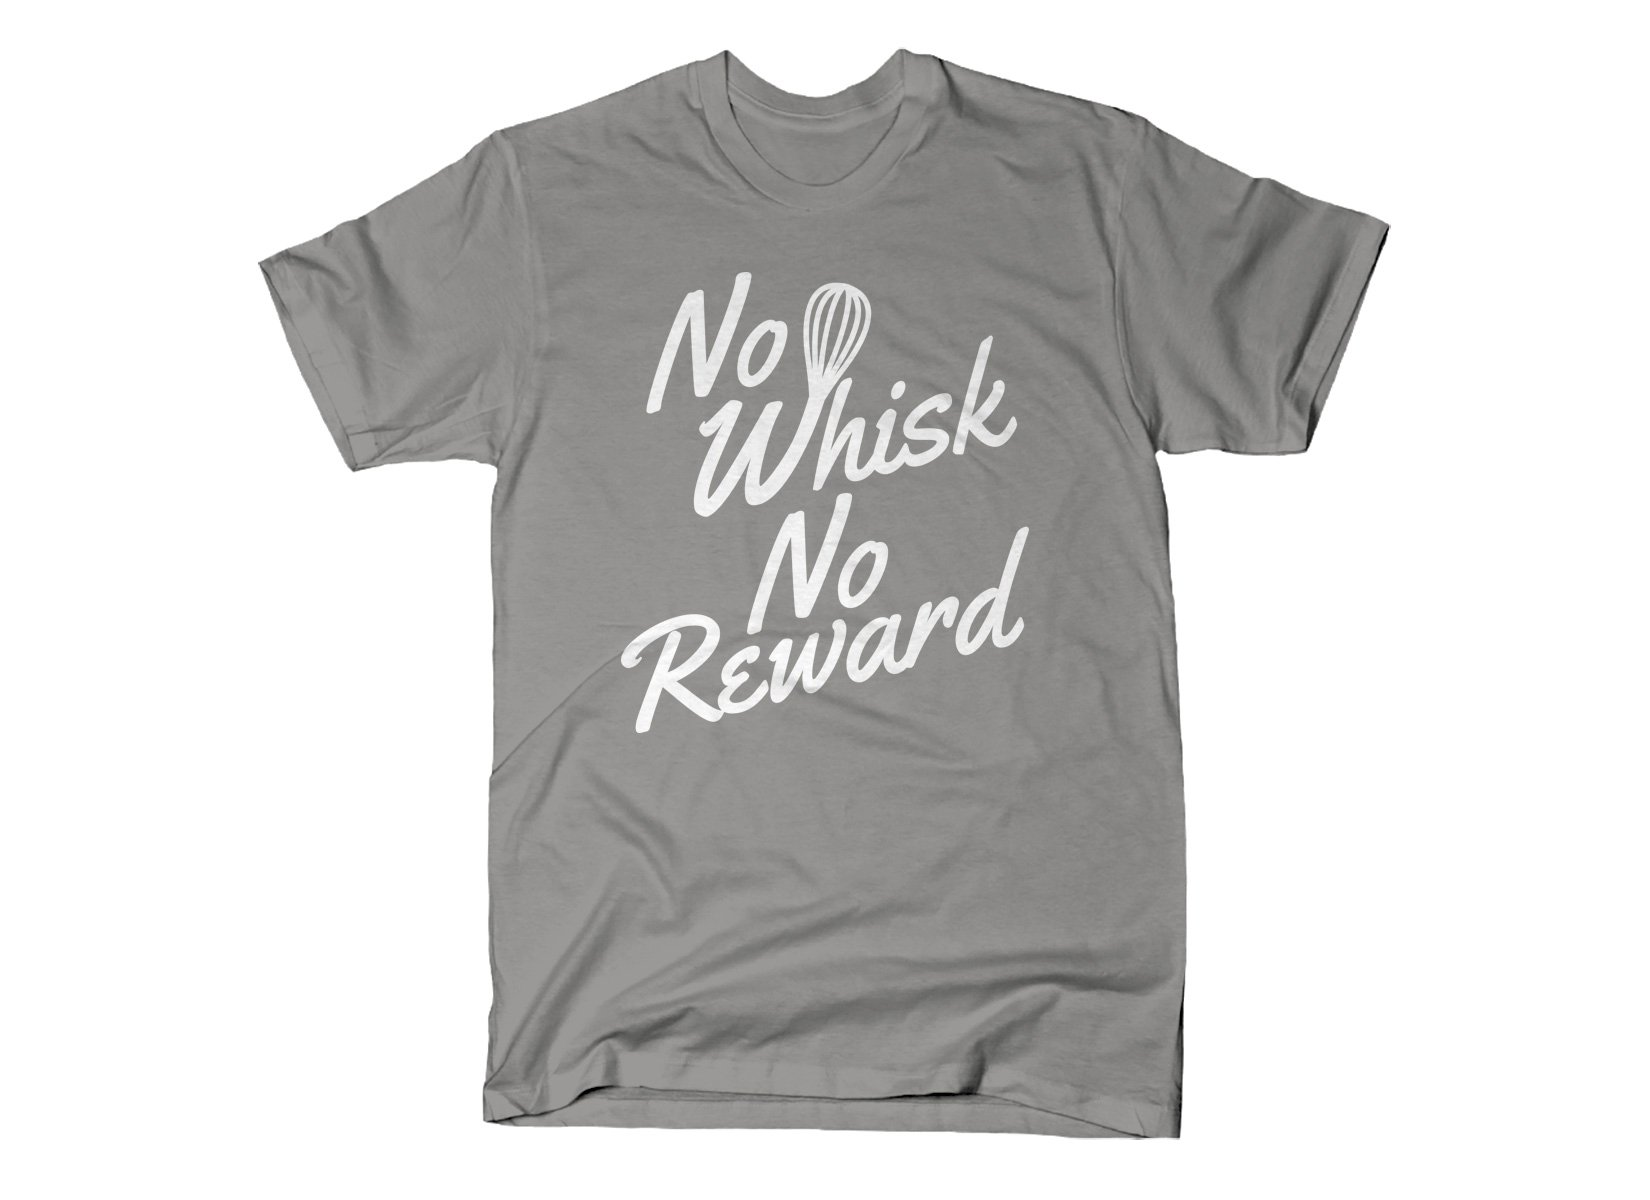 No Whisk No Reward on Mens T-Shirt